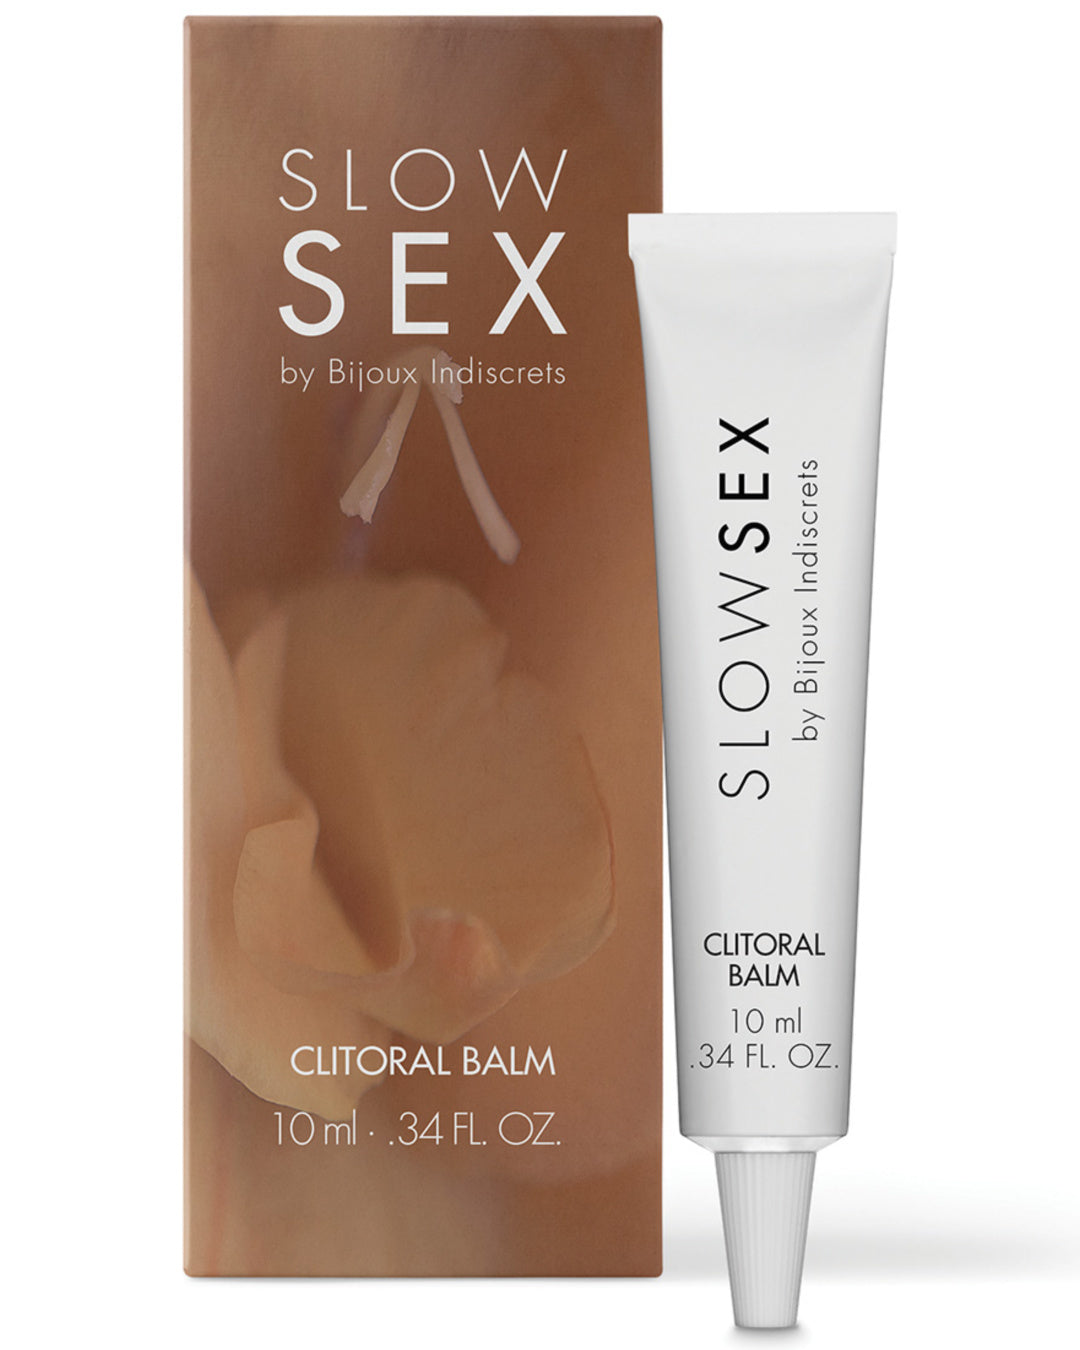 Bijoux Indiscrets Slow Sex Clitoral Balm next to product box